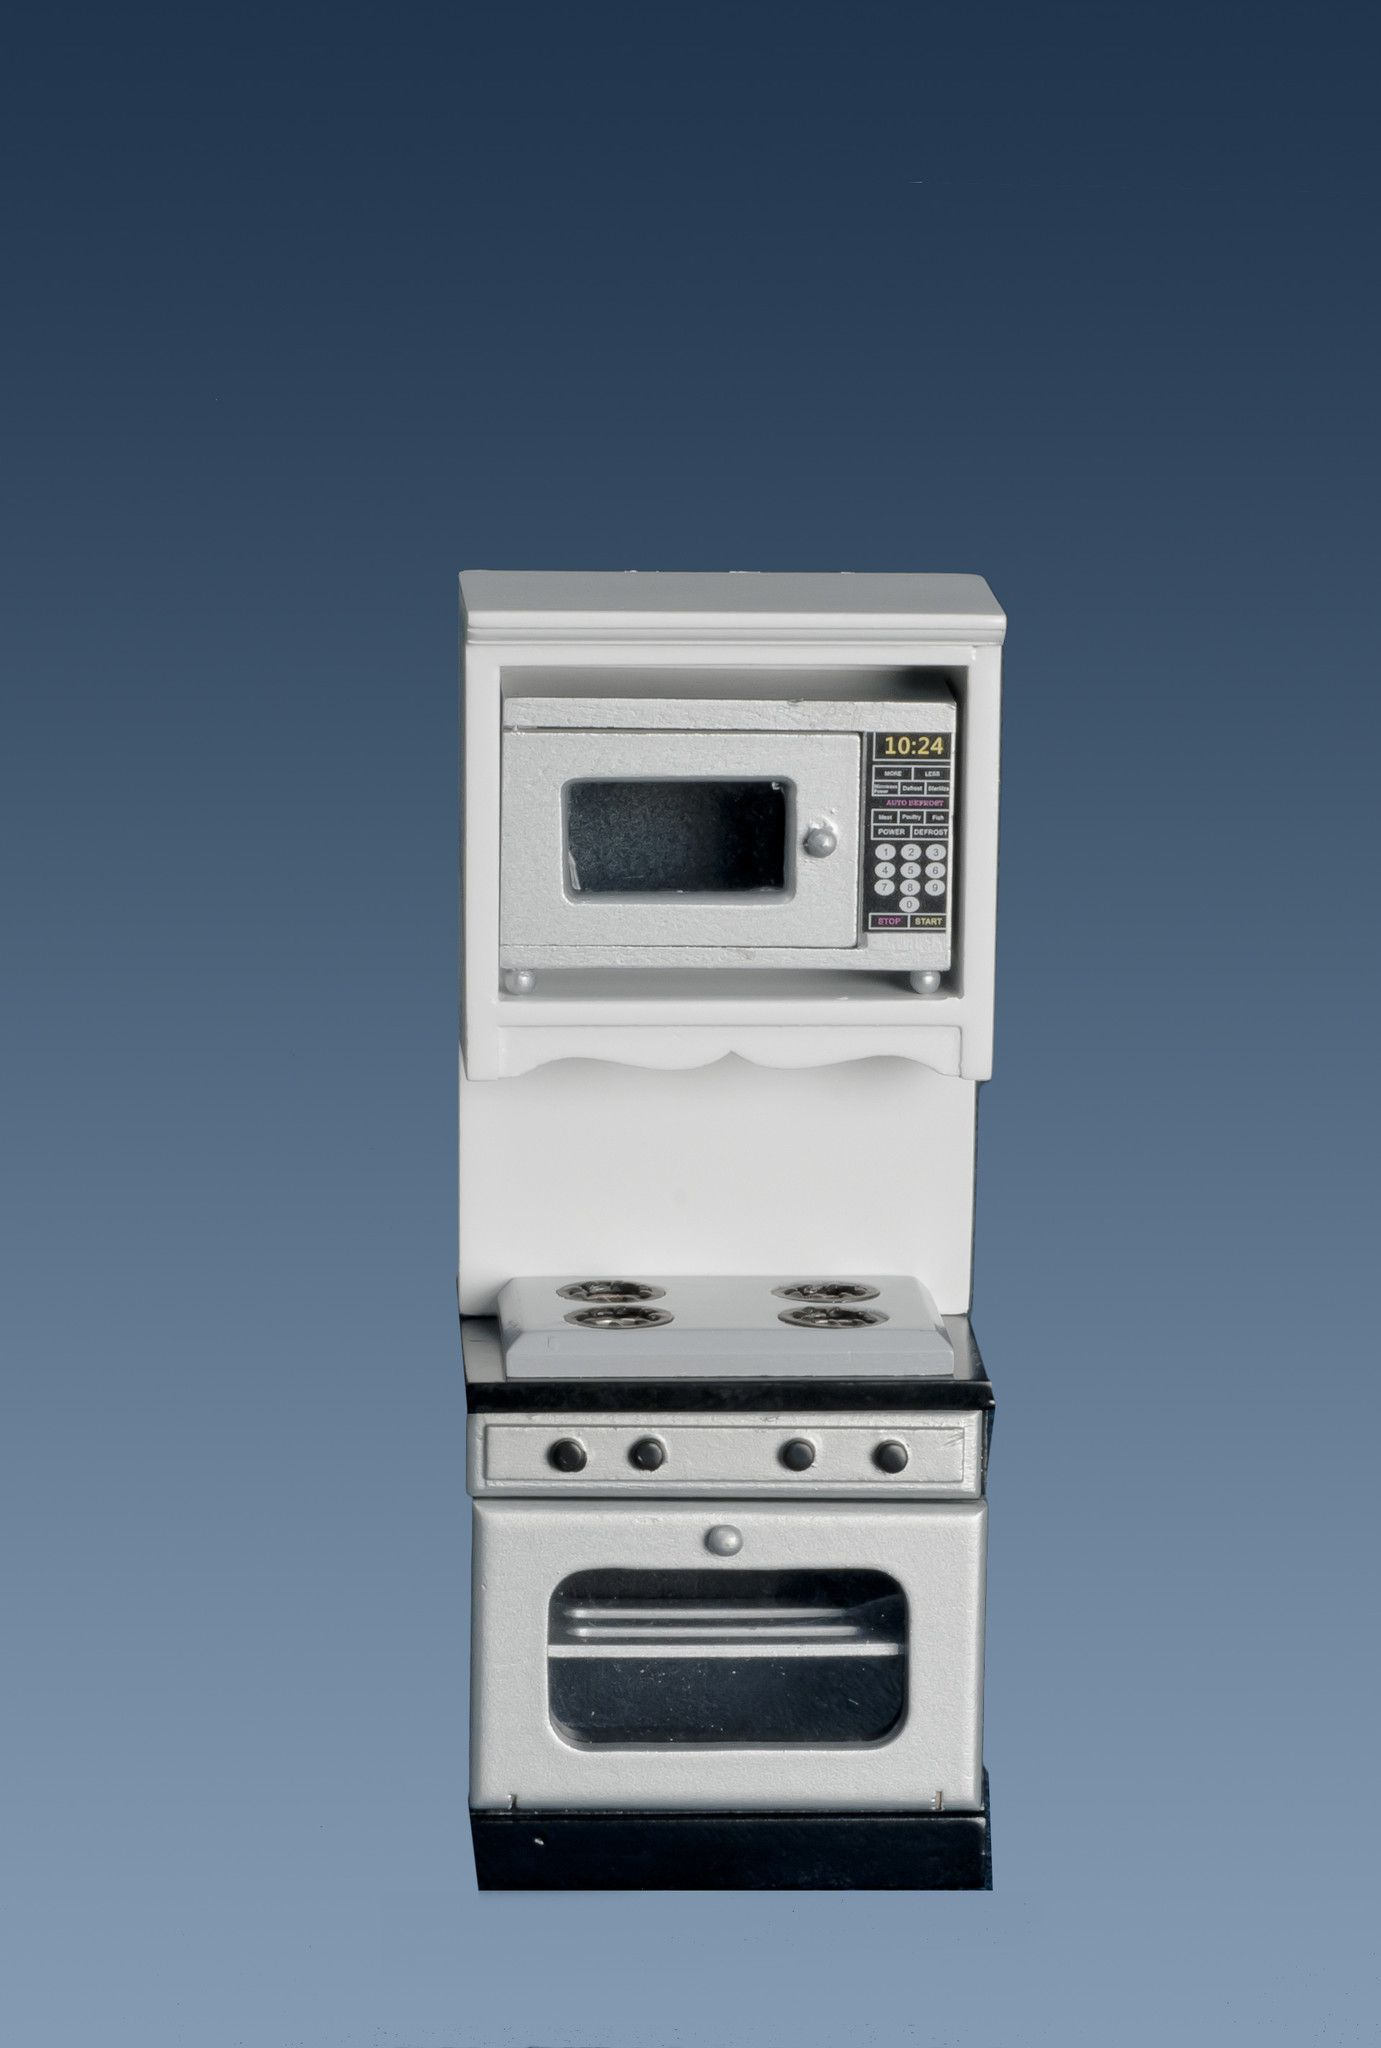 Kitchen Stove and Microwave - White, Silver, with Black | Kitchen ...